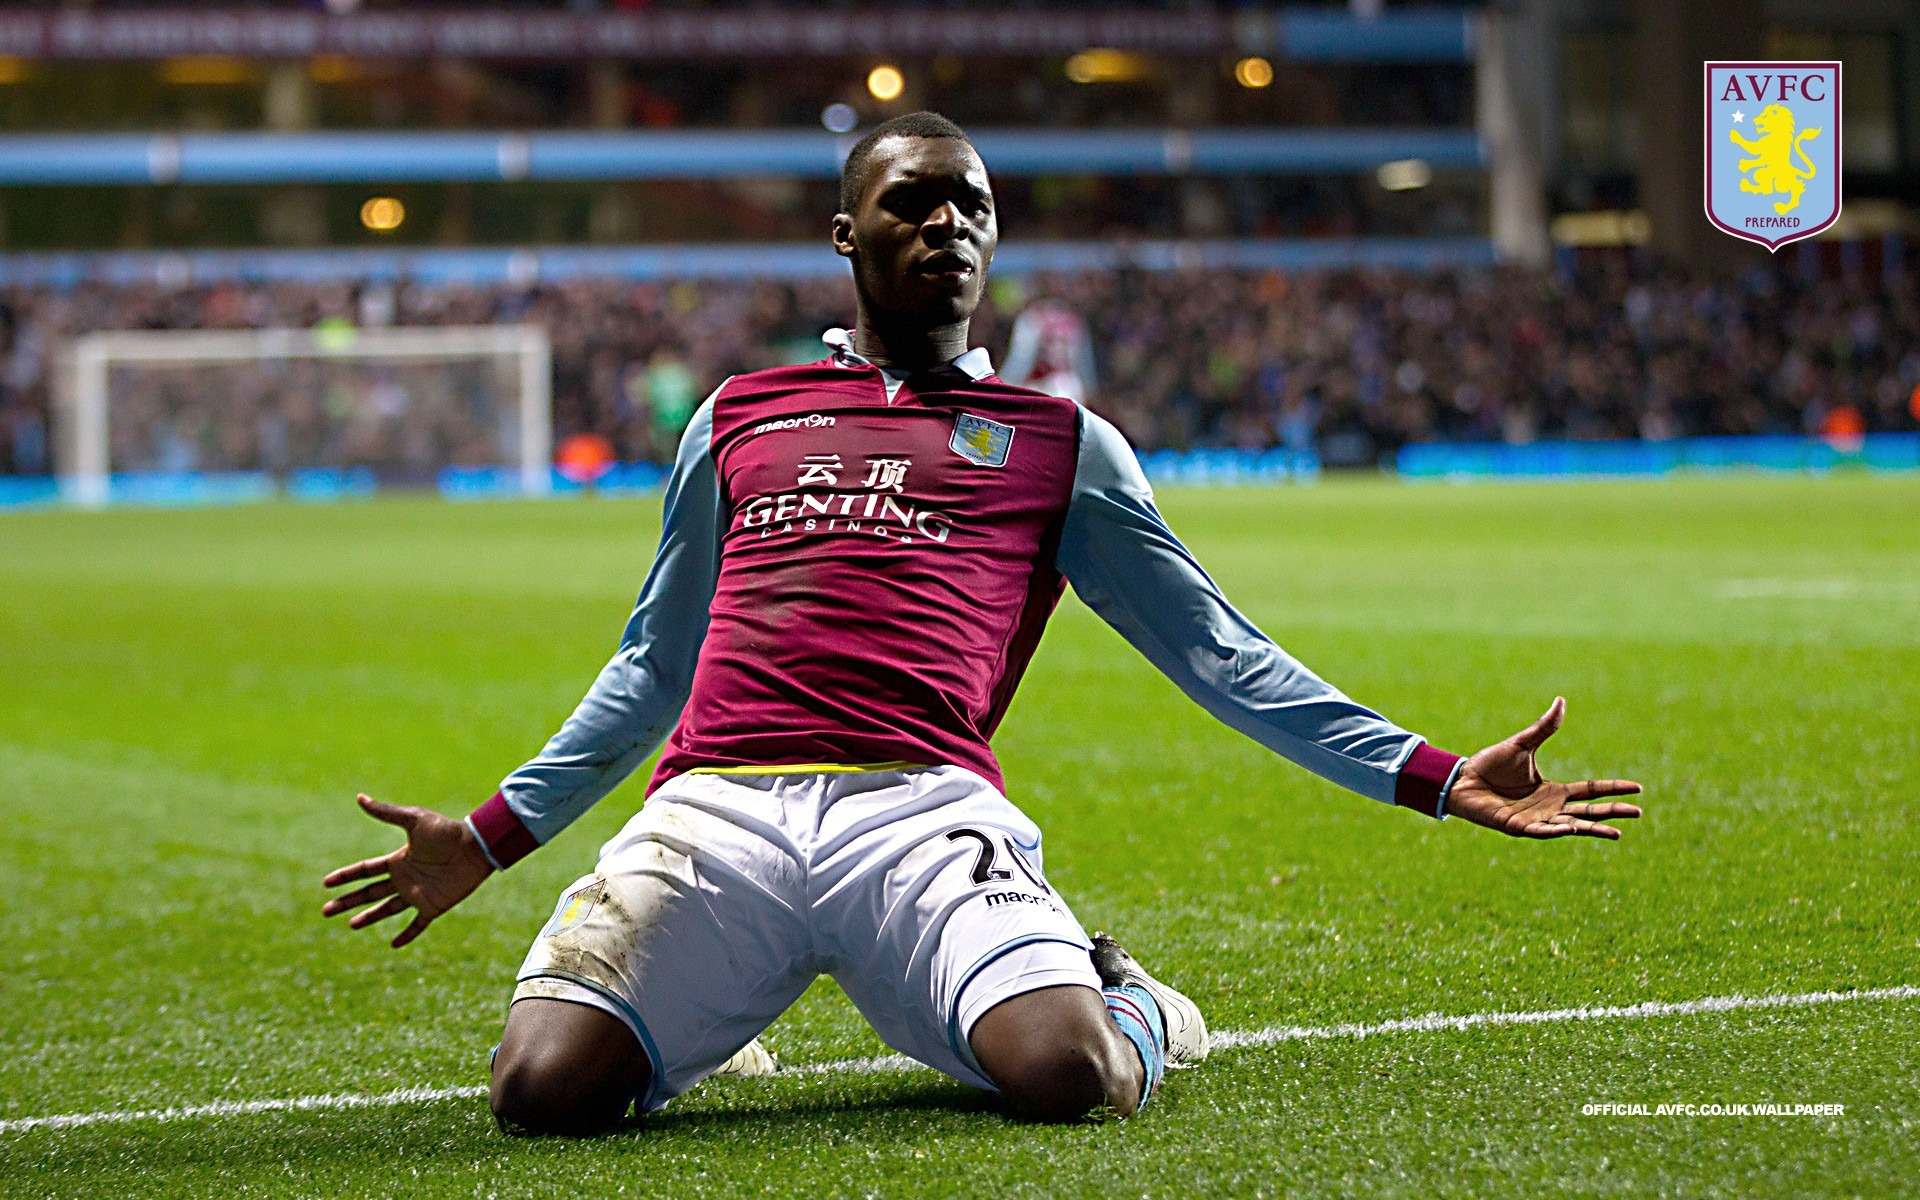 Brilliant Benteke-Aston Villa 2013 HD Wallpaper Preview